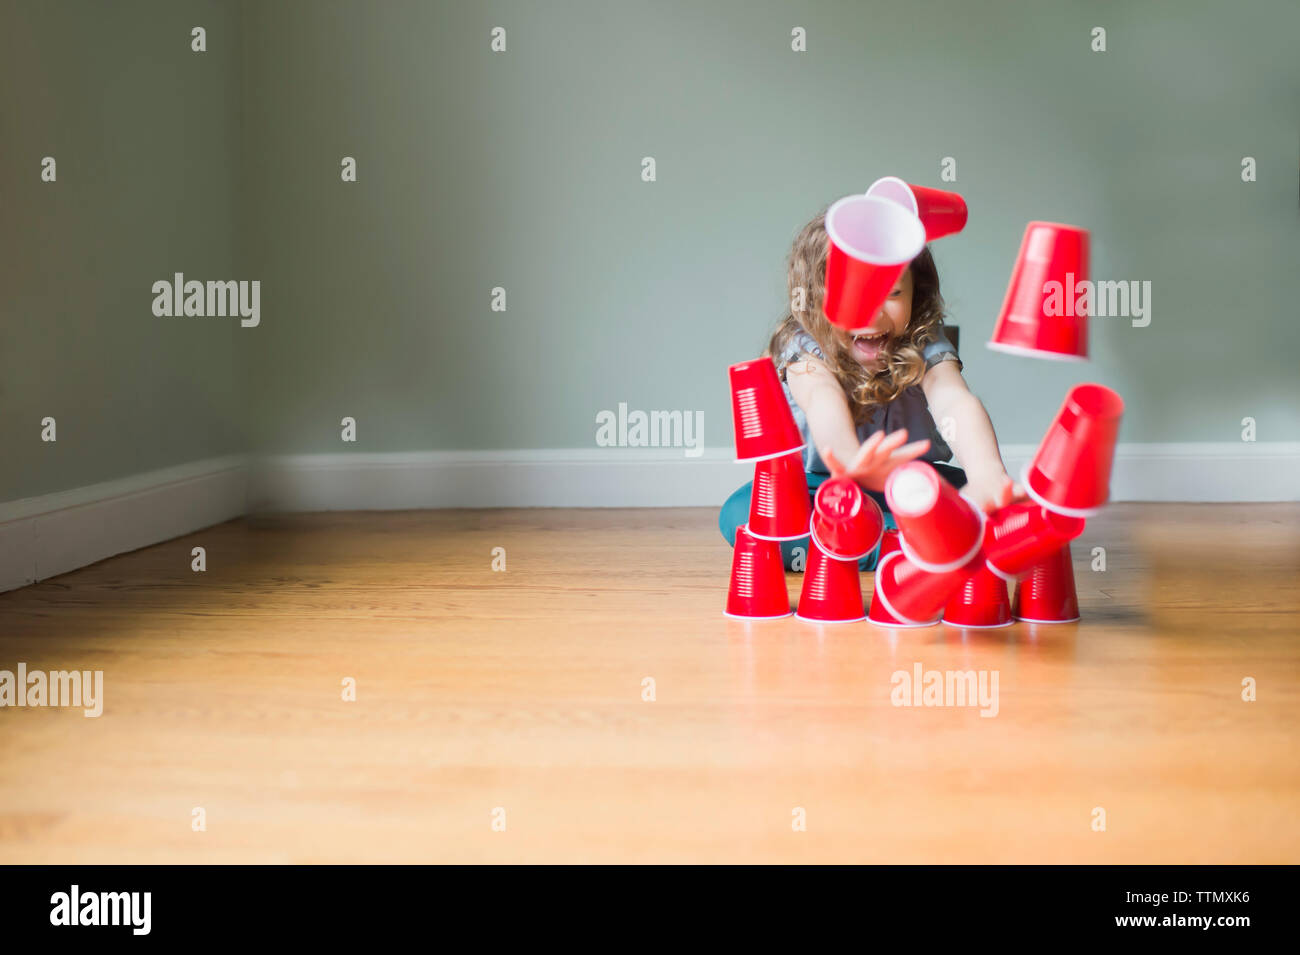 Playful girl breaking pyramid made of disposable cups while sitting on floor at home - Stock Image